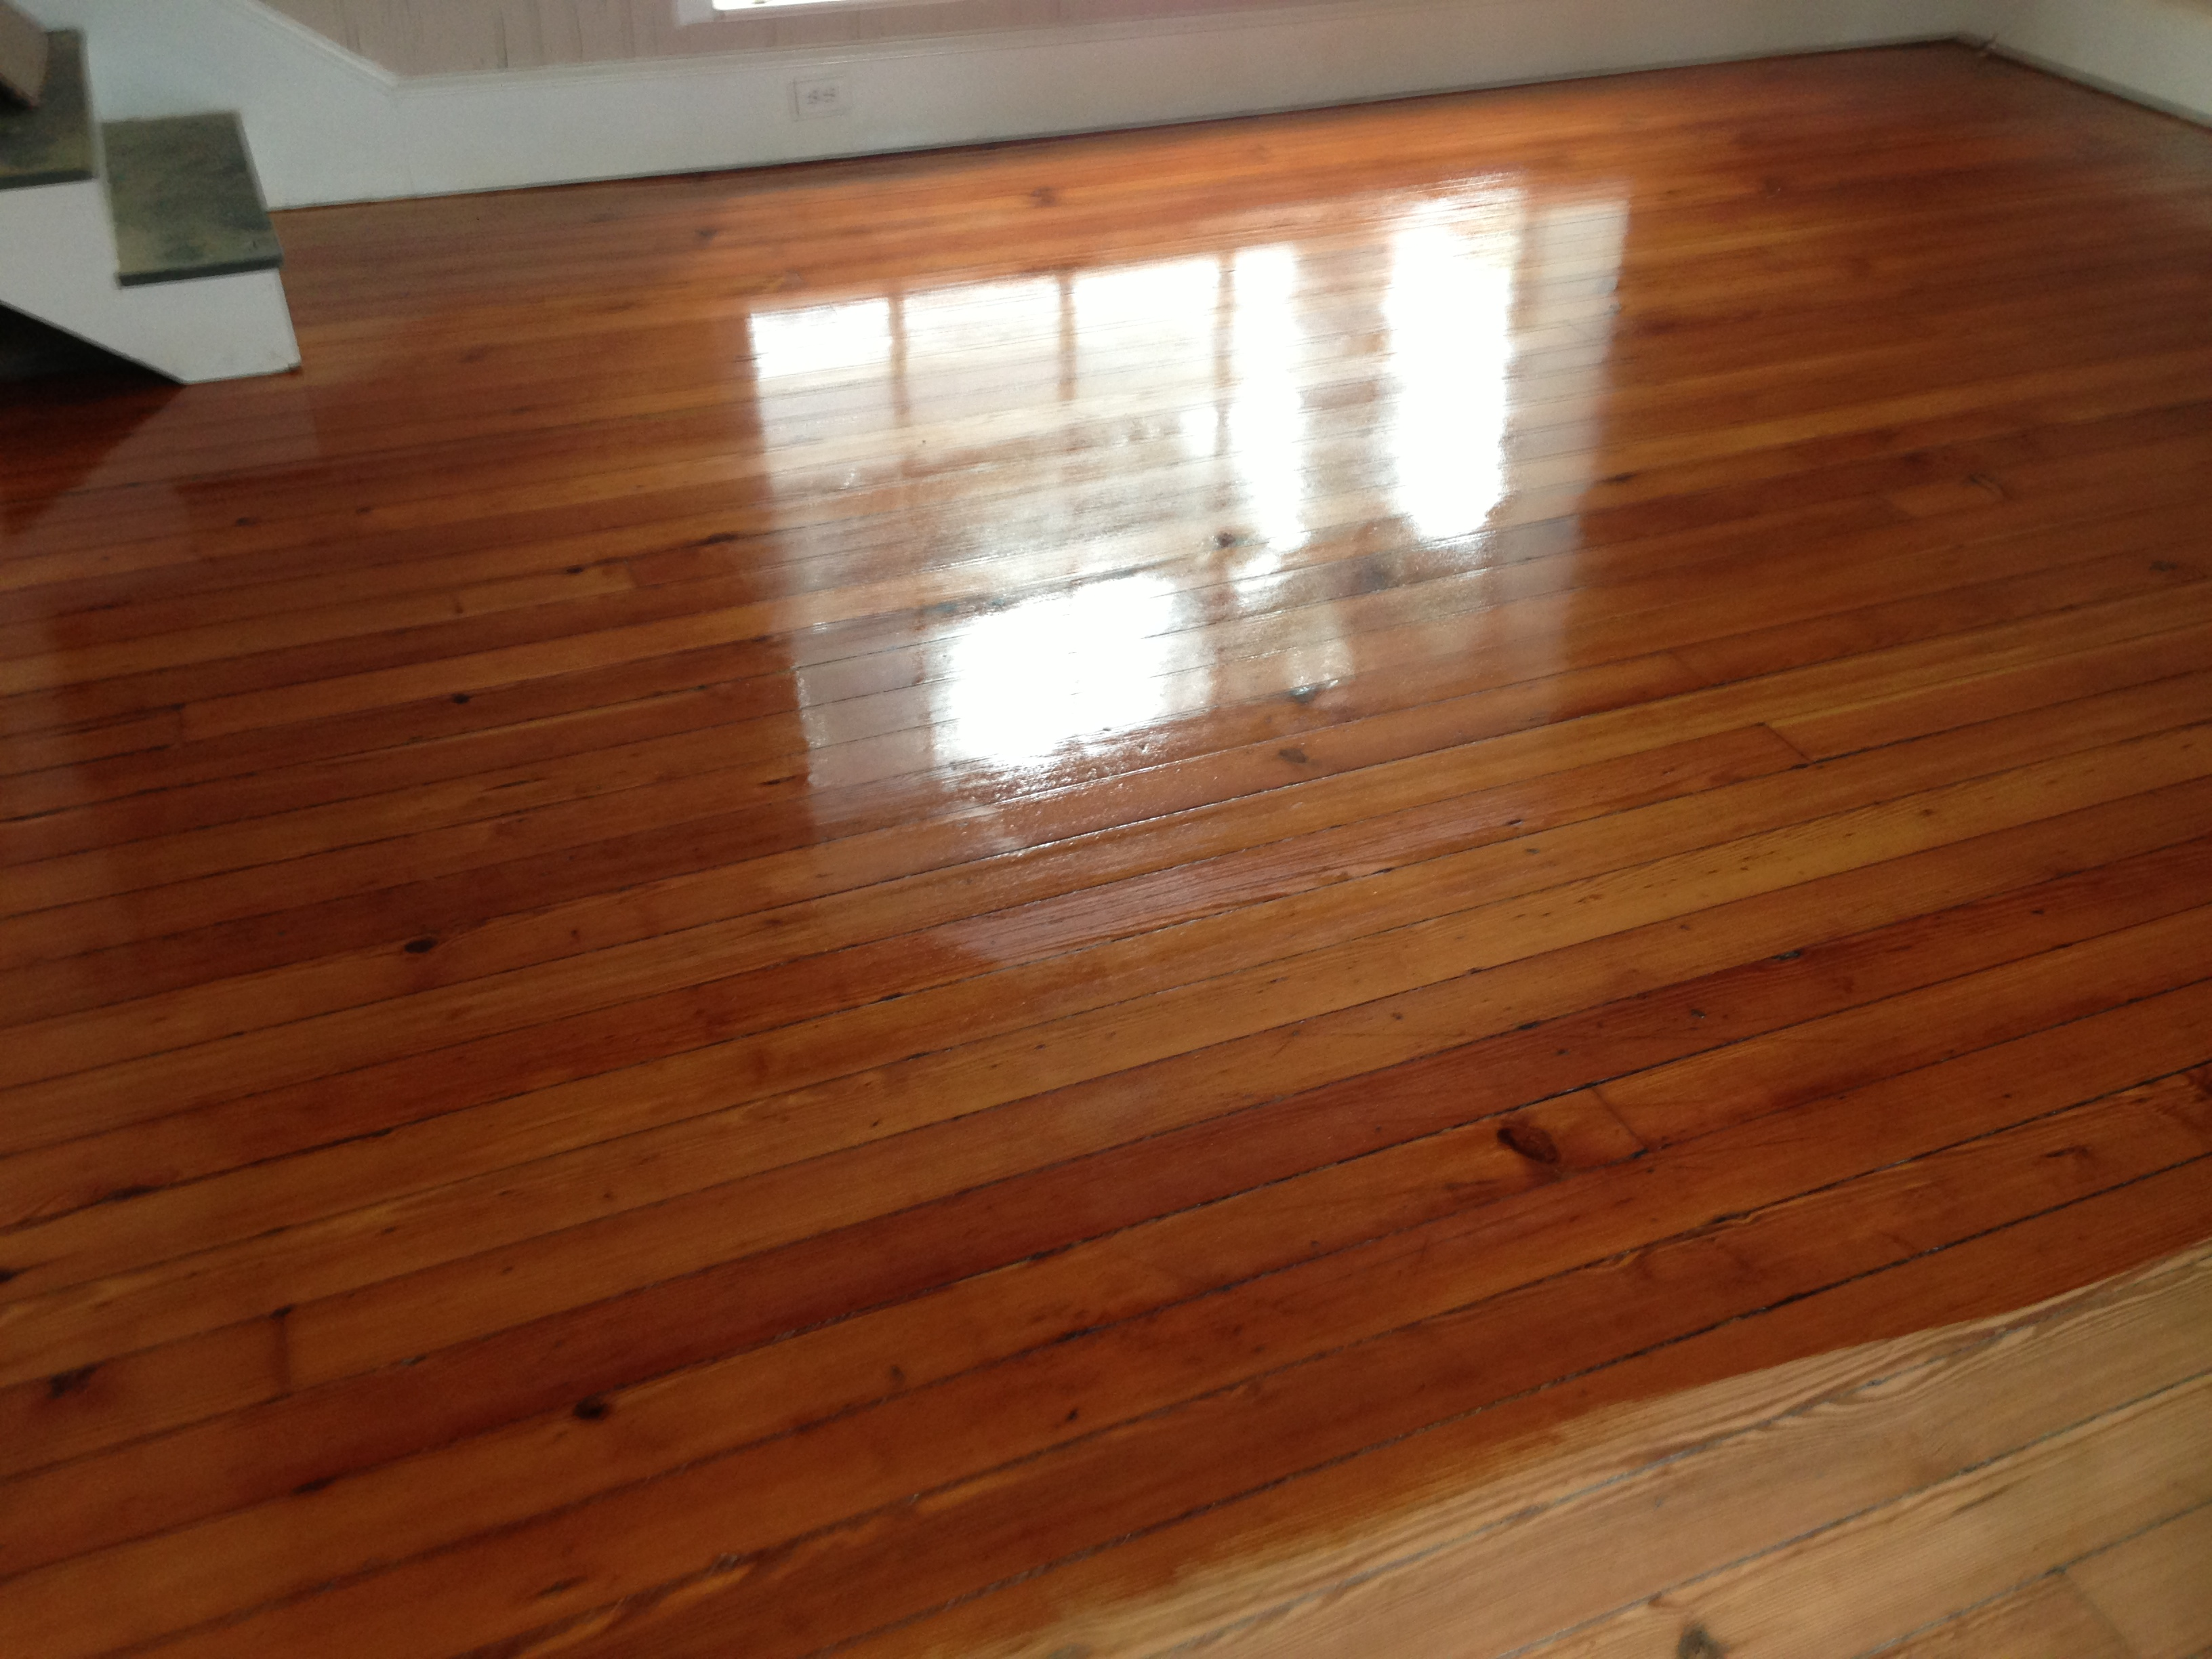 Refinishing heart pine floors floor matttroy Unfinished hardwood floors